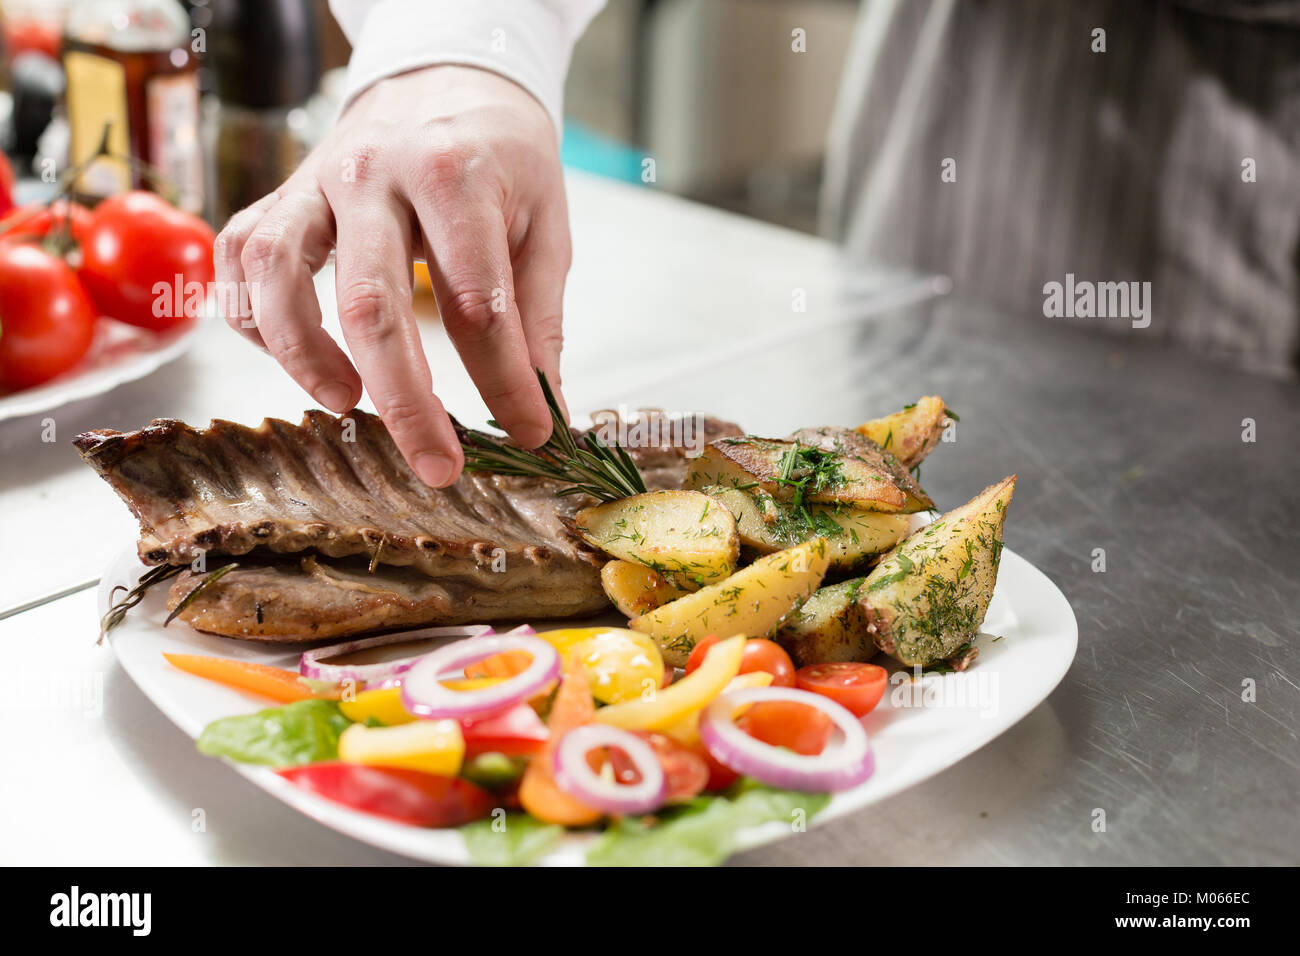 the chef prepares in the restaurant. Grilled rack of lamb with fried potatoes and fresh vegetables. closeup Stock Photo